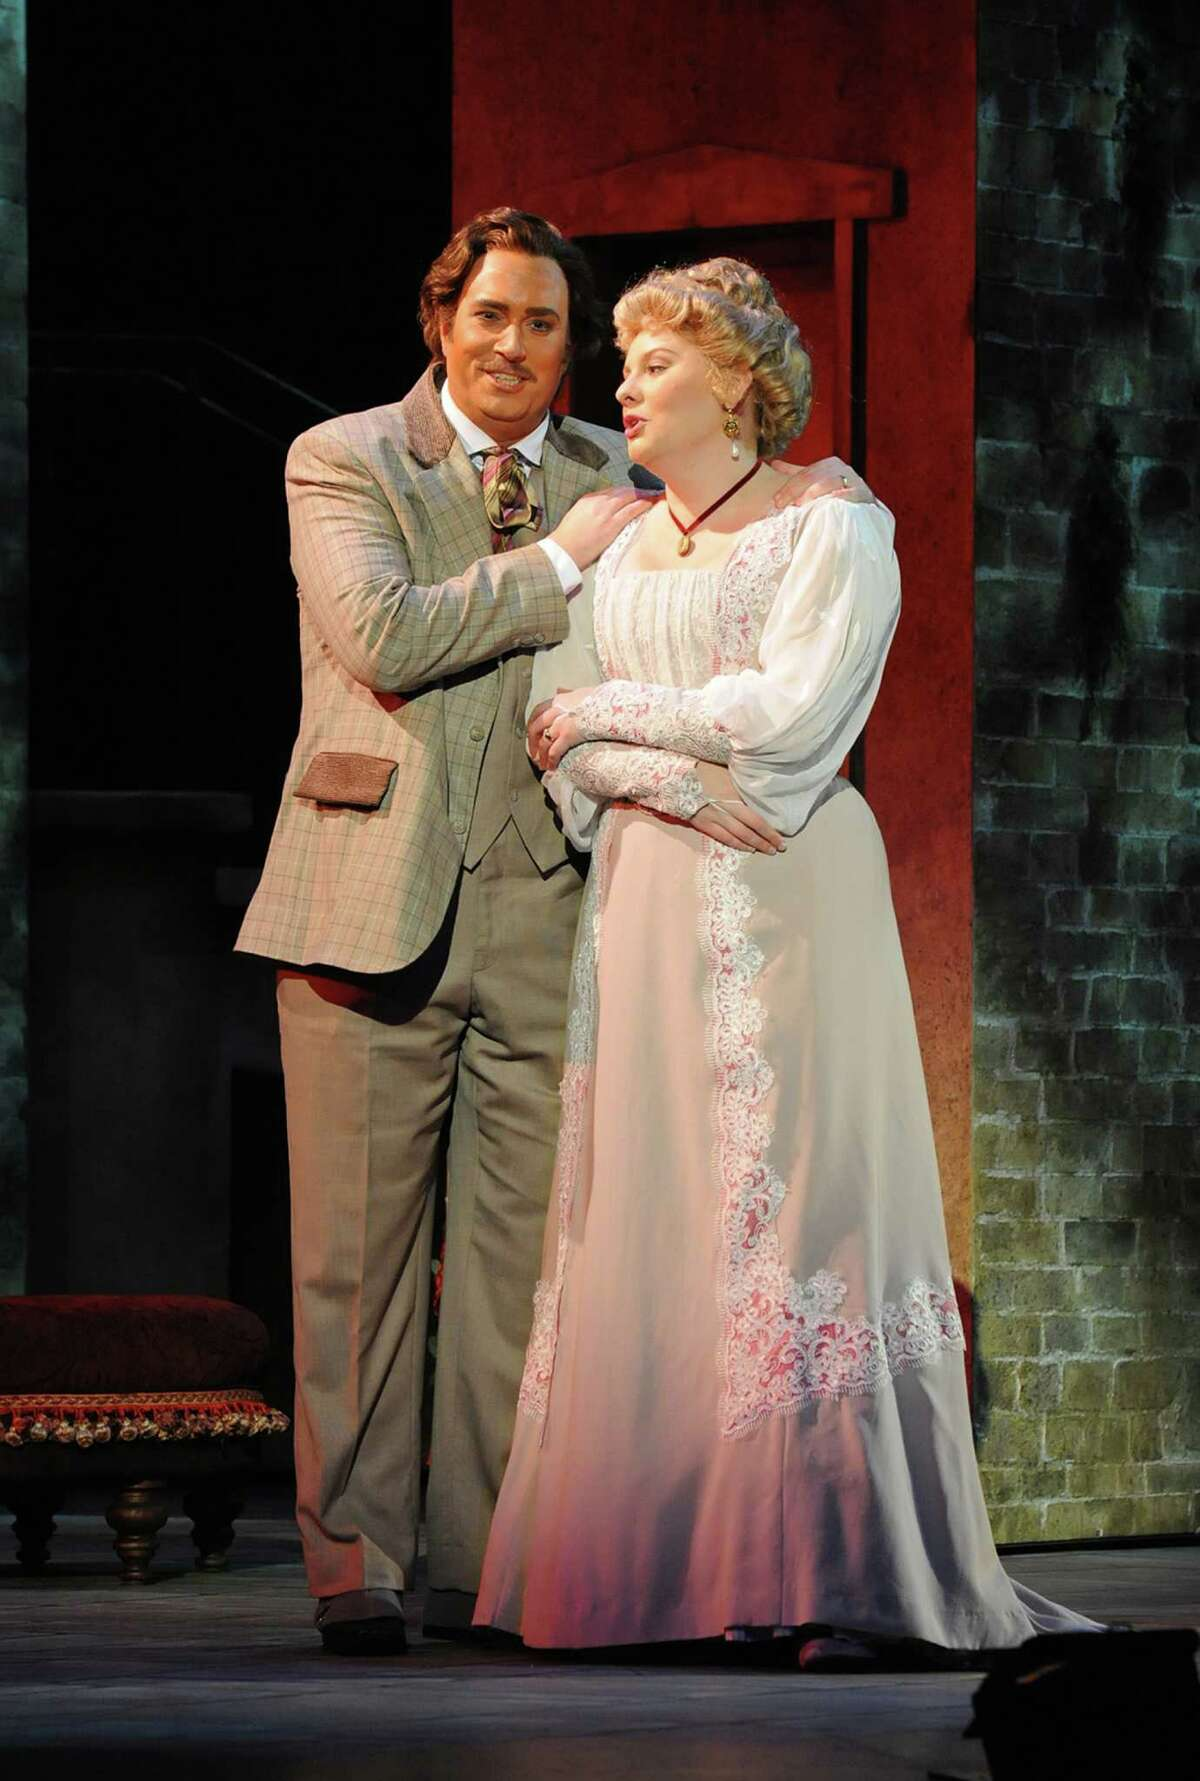 """Matthew Hanscom (left) as Gino Carella and Isabella Ivy as Lilia Herriton in """"Where Angels Fear to Tread"""" at Opera San Jose."""